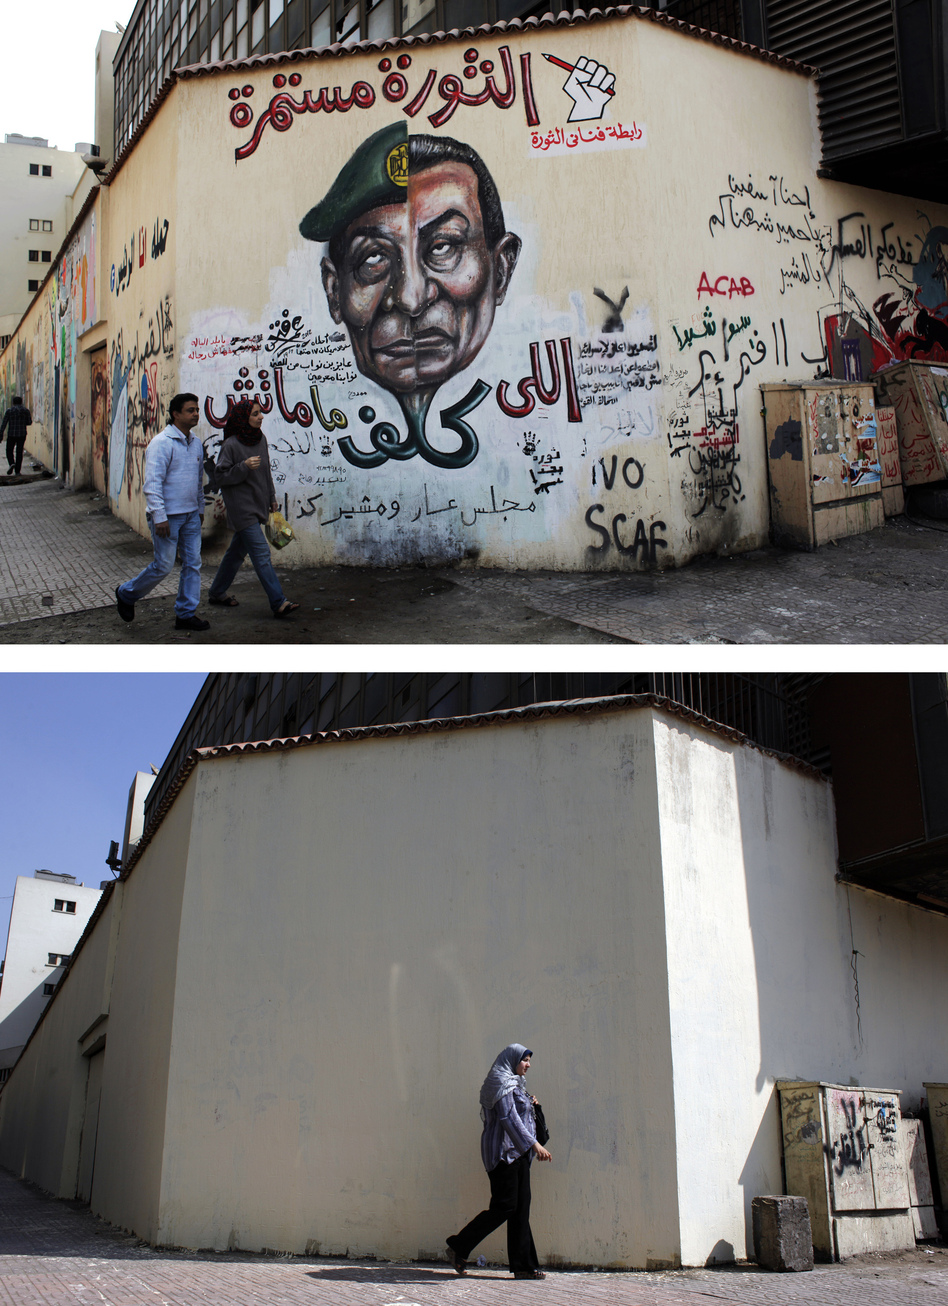 A mural (pictured above in March) was whitewashed (below) during a cleanup campaign in Cairo's Tahrir Square in September. Graffiti artists repainted the wall soon after. (AP)